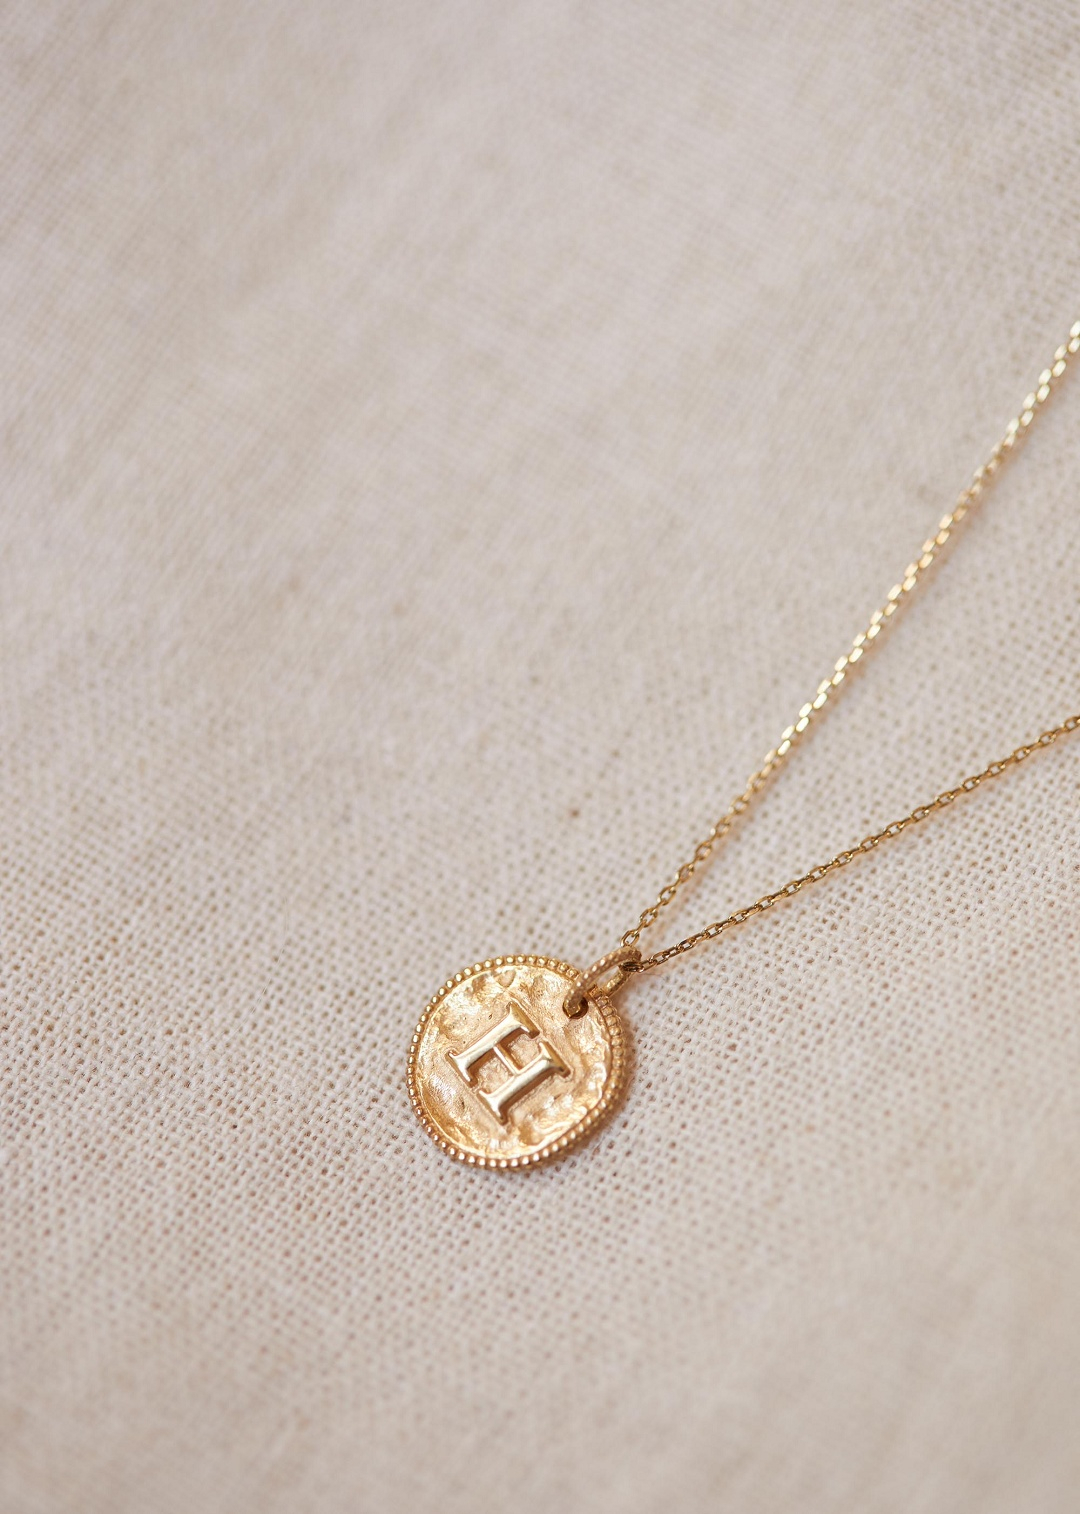 Sézane – Sara Pendant – Letters A To H For Most Popular Letter S Alphabet Locket Element Necklaces (View 17 of 25)